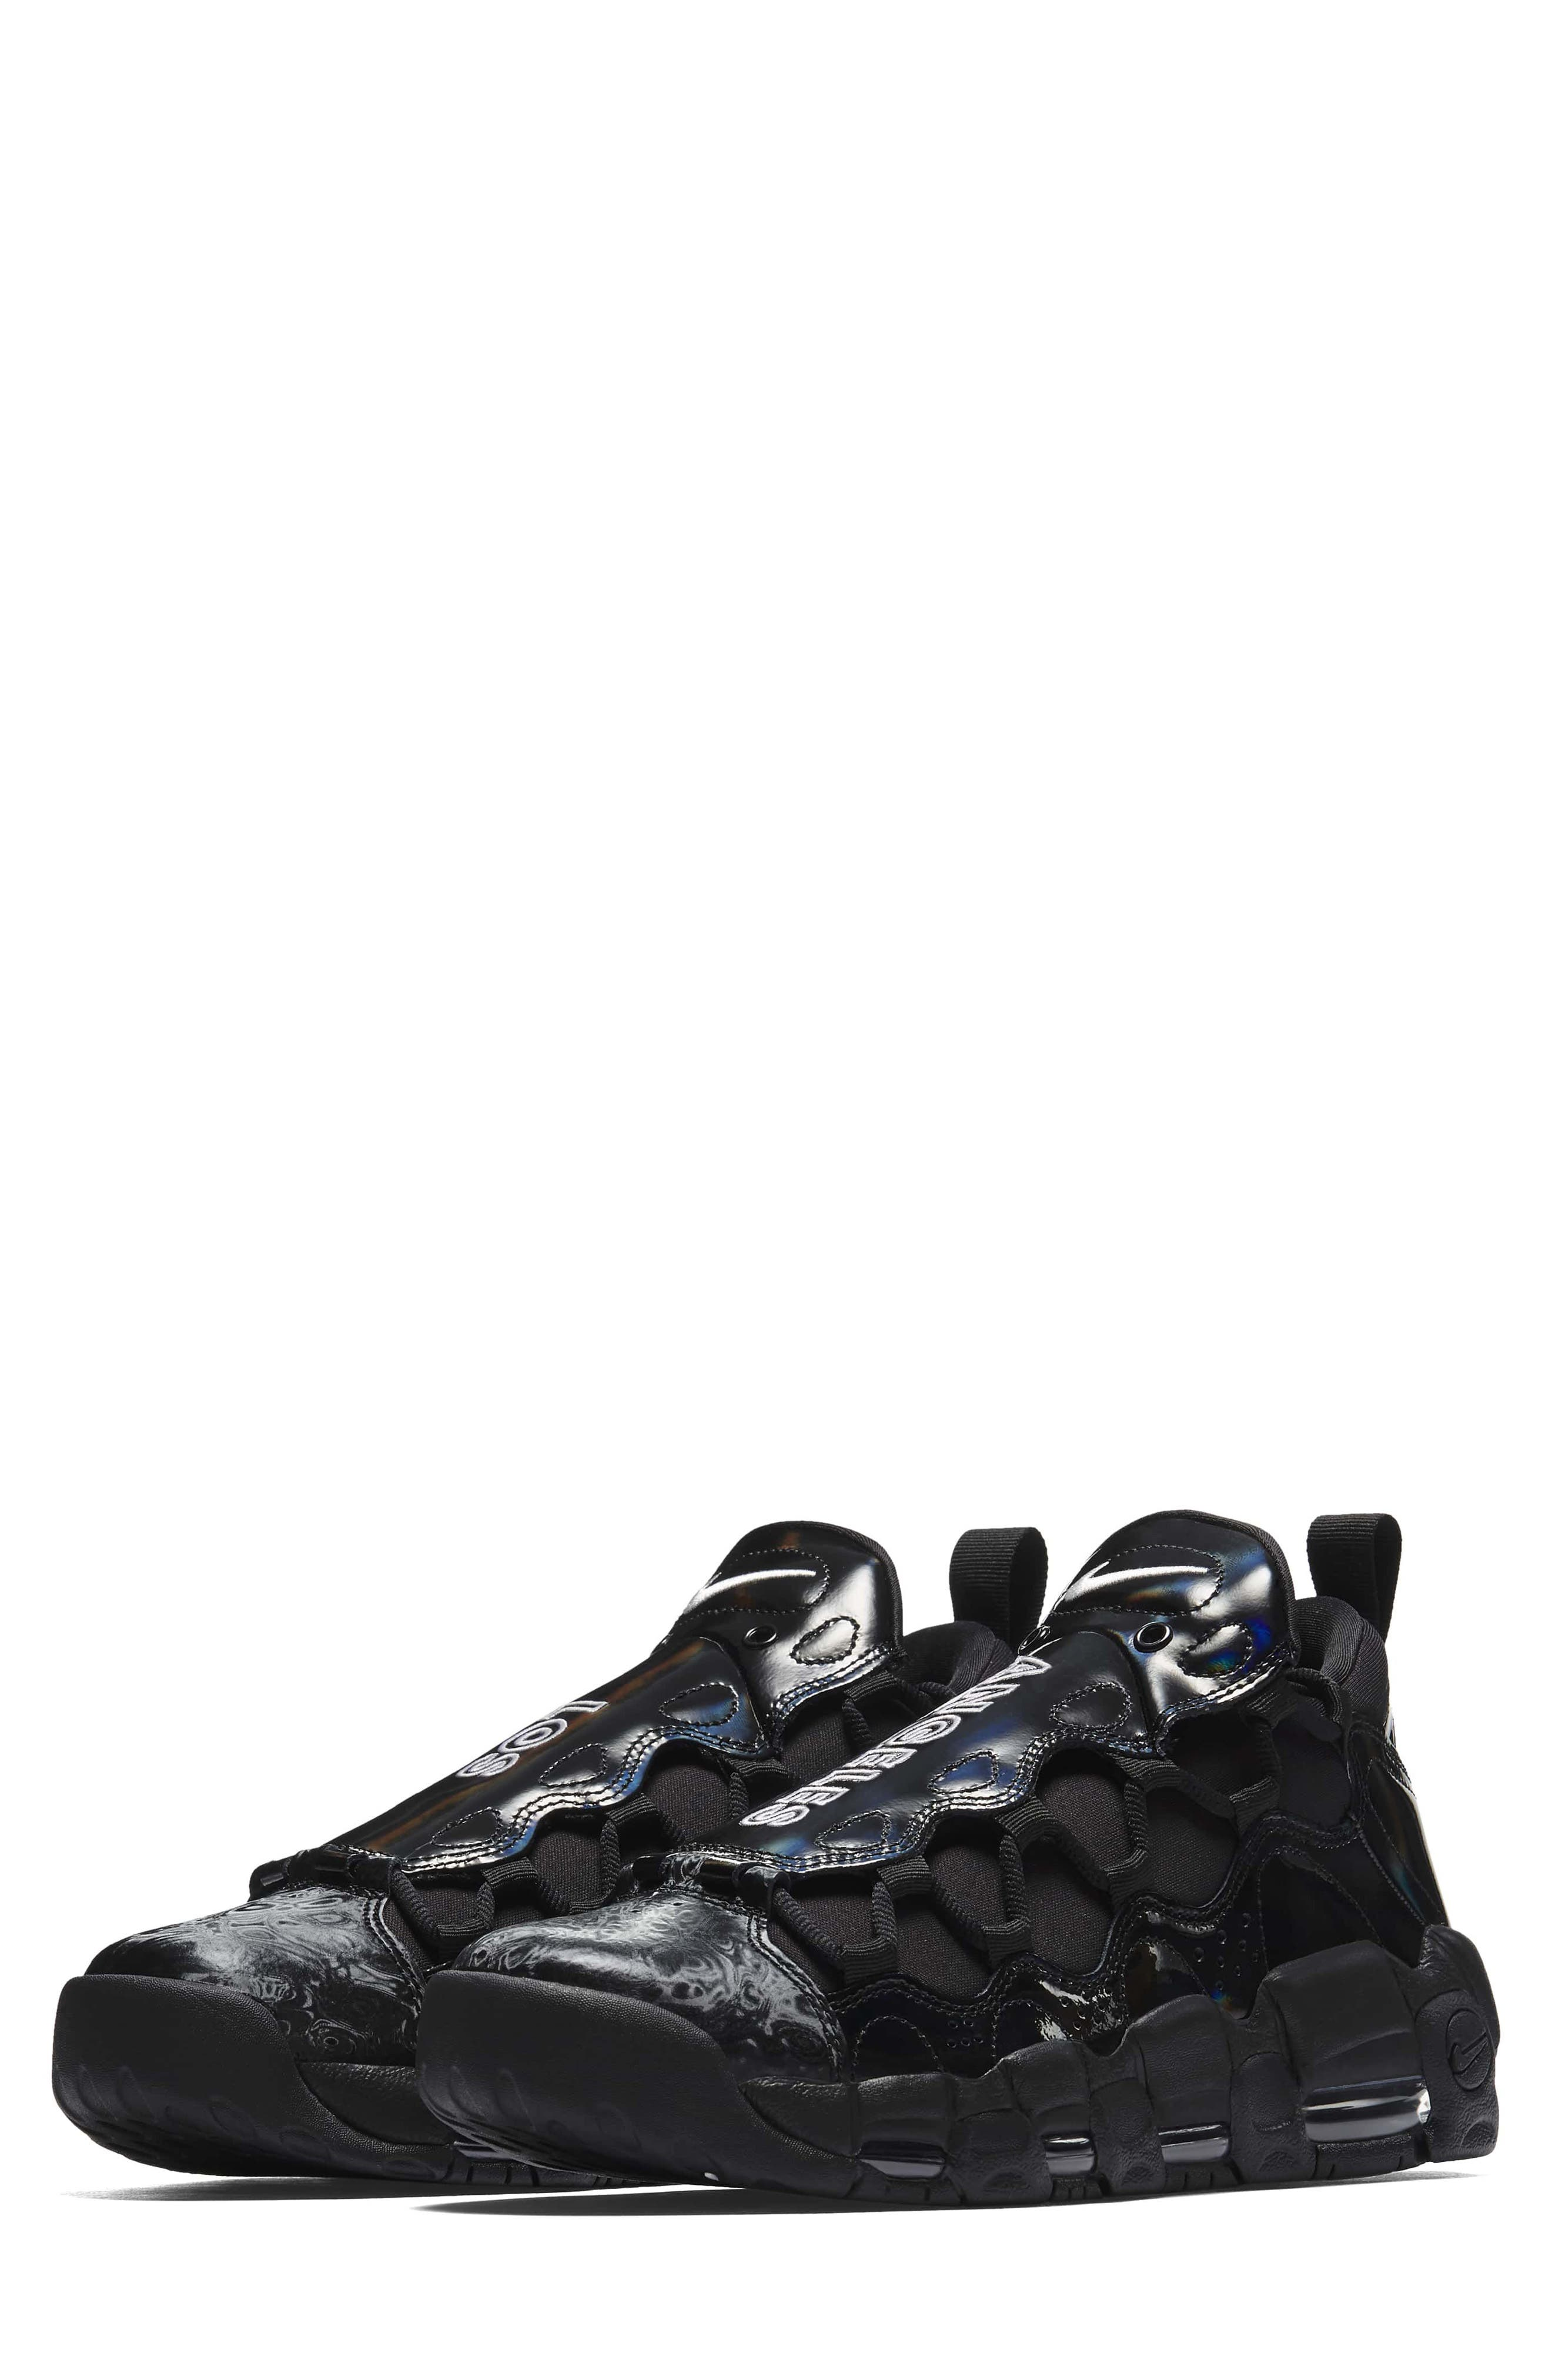 Air More Money LX Sneaker,                         Main,                         color, Black/ Black/ Summit White